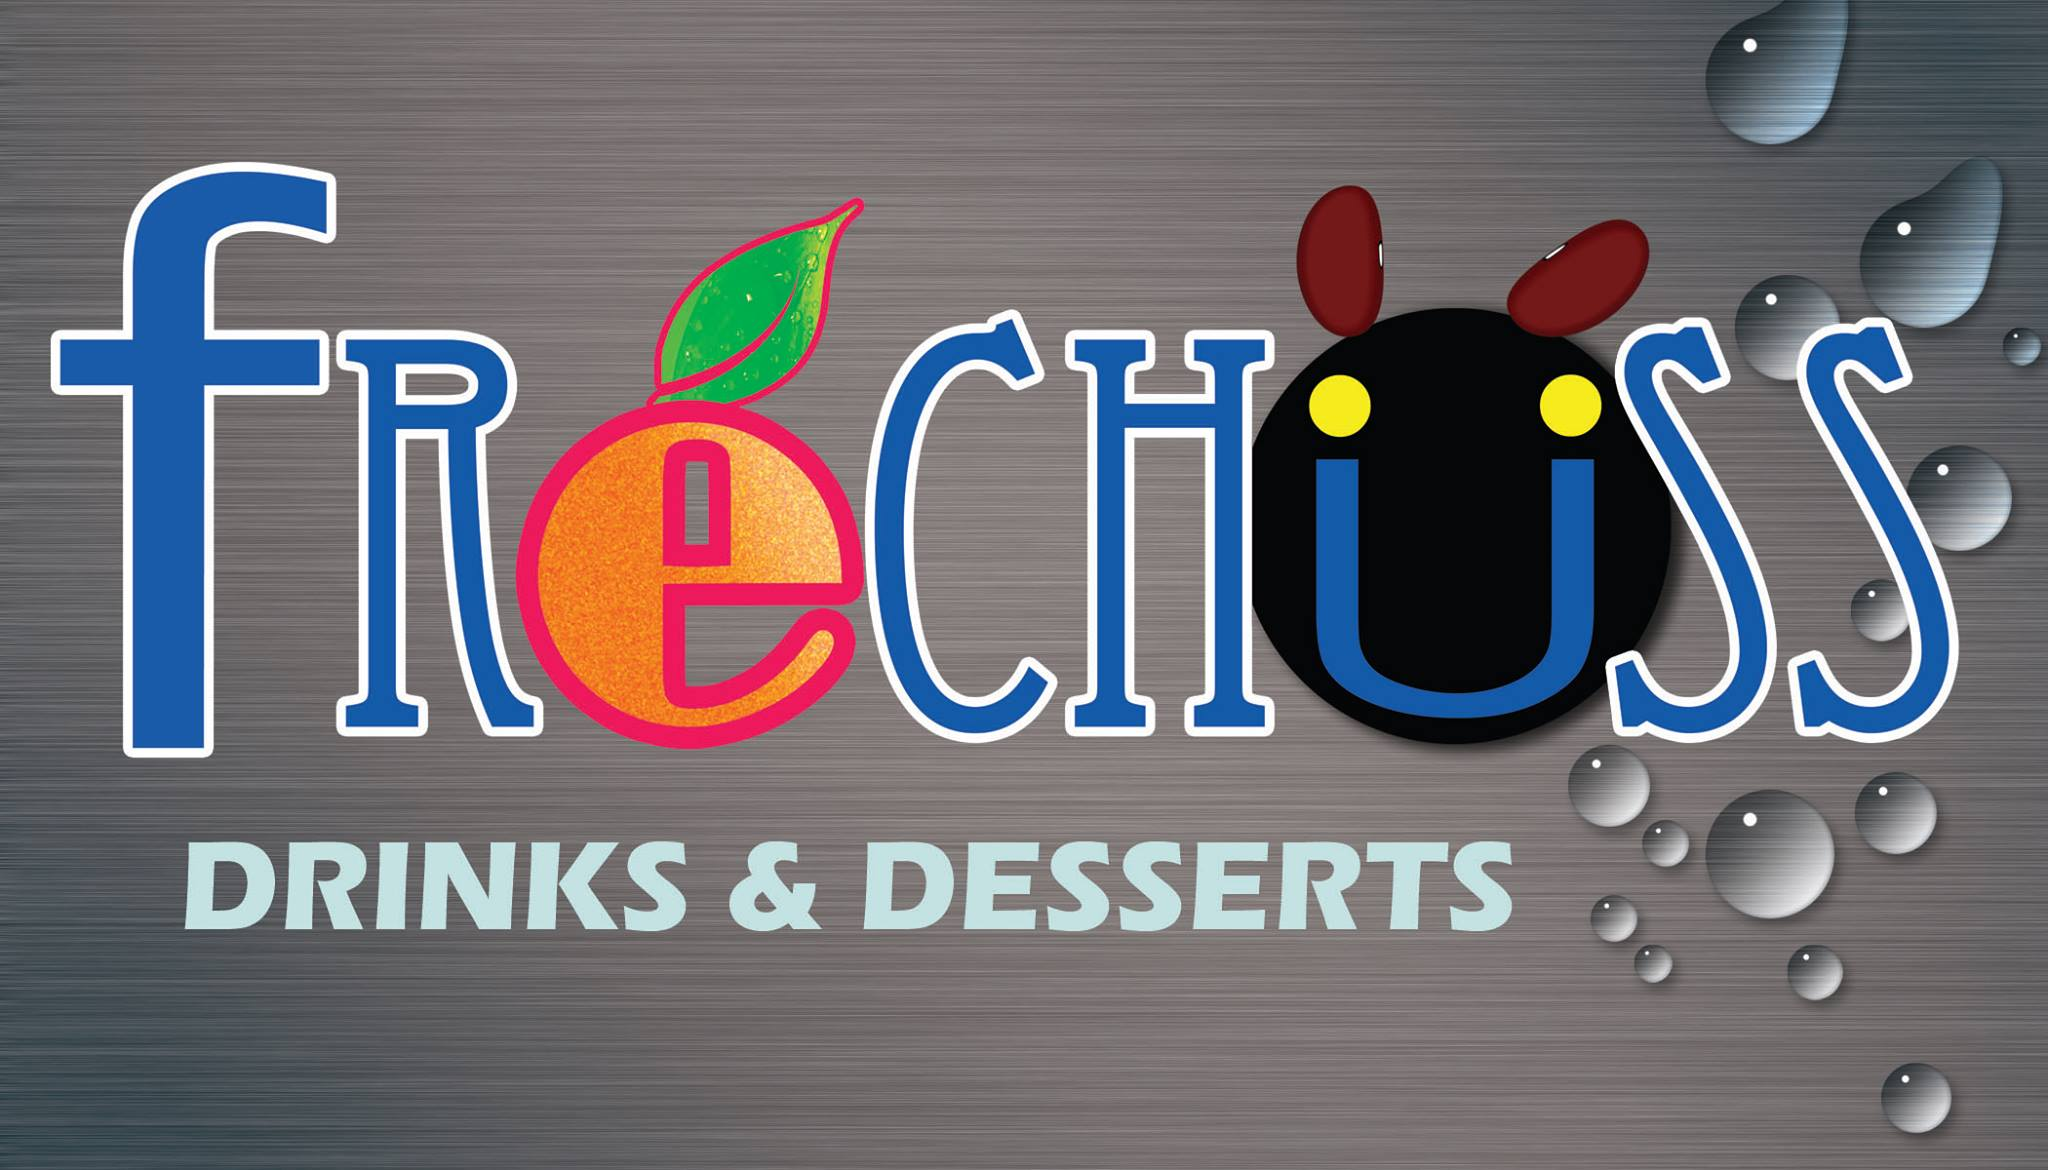 Frechuss Drinks and Desserts